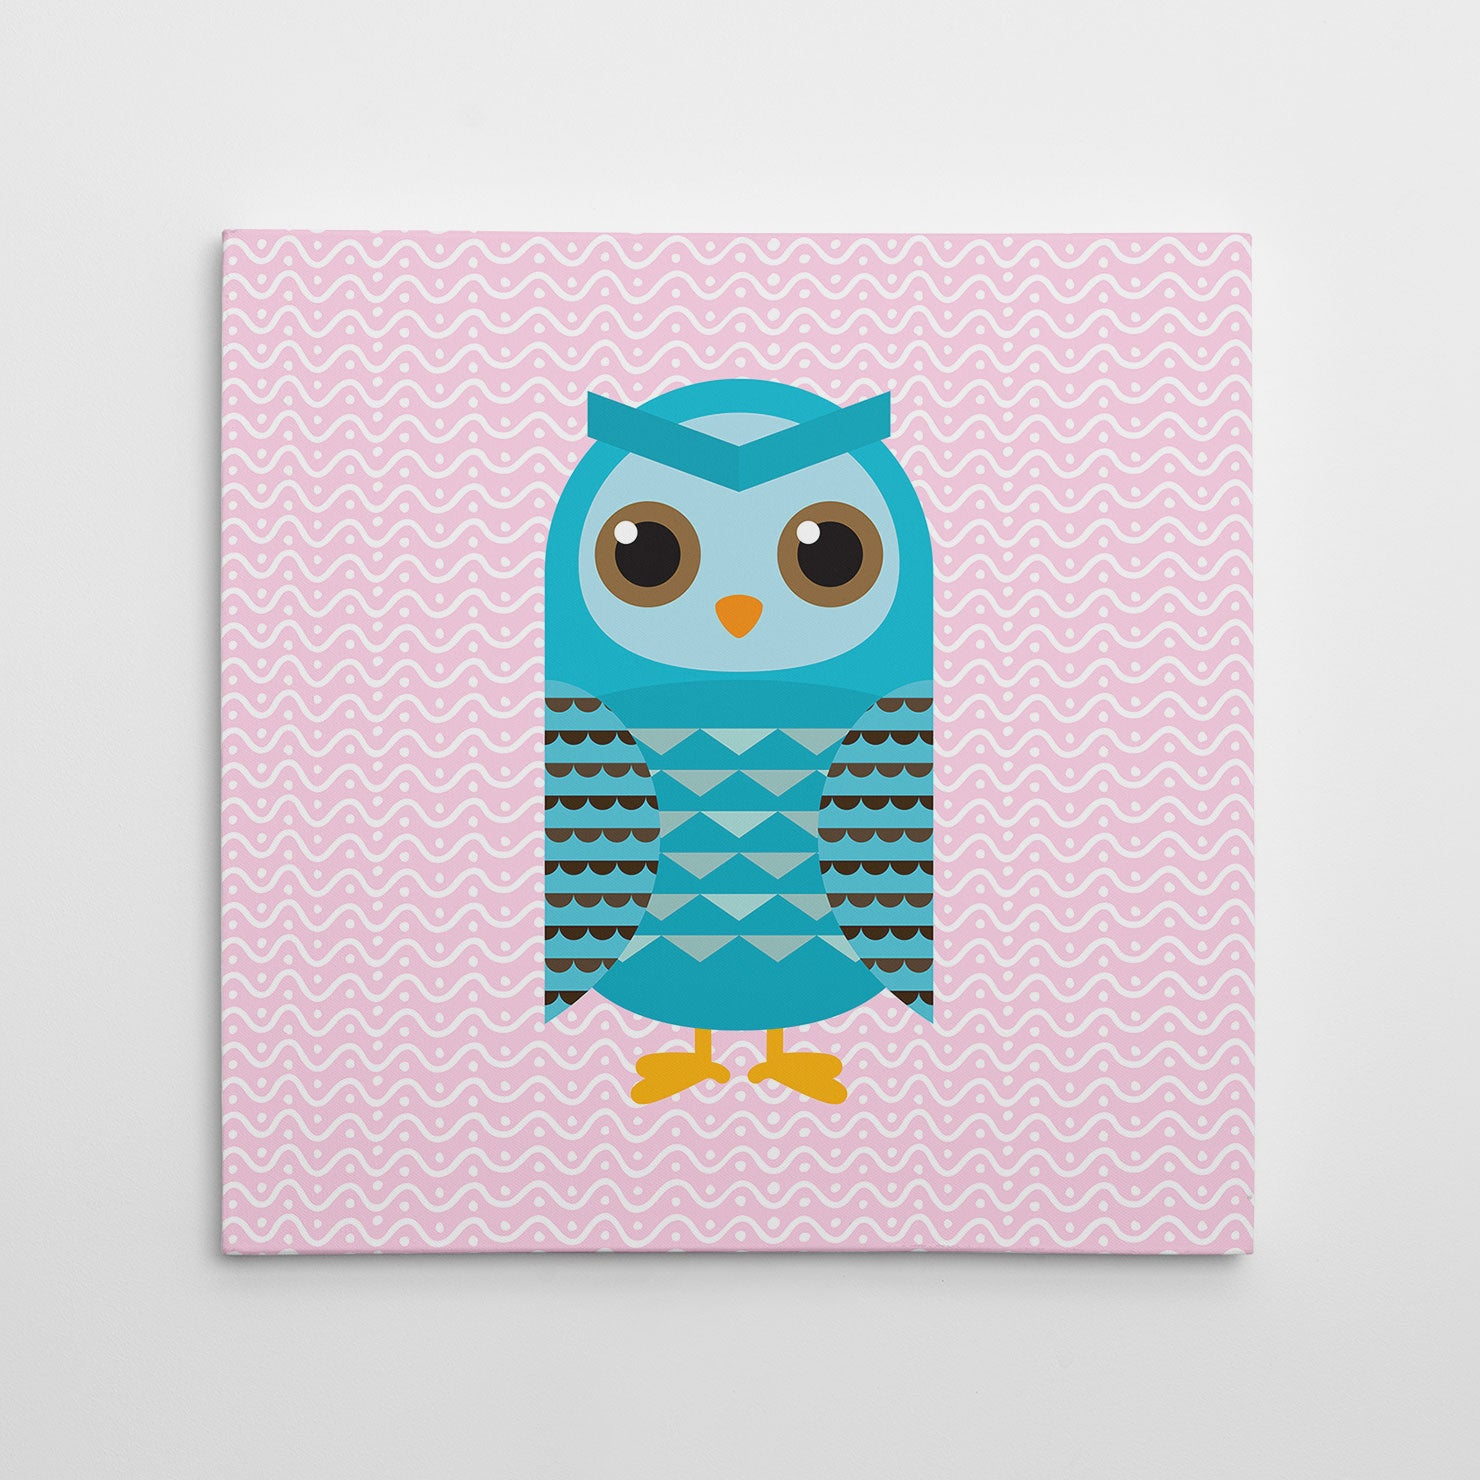 Square canvas print with a blue owl on pink patterned background.